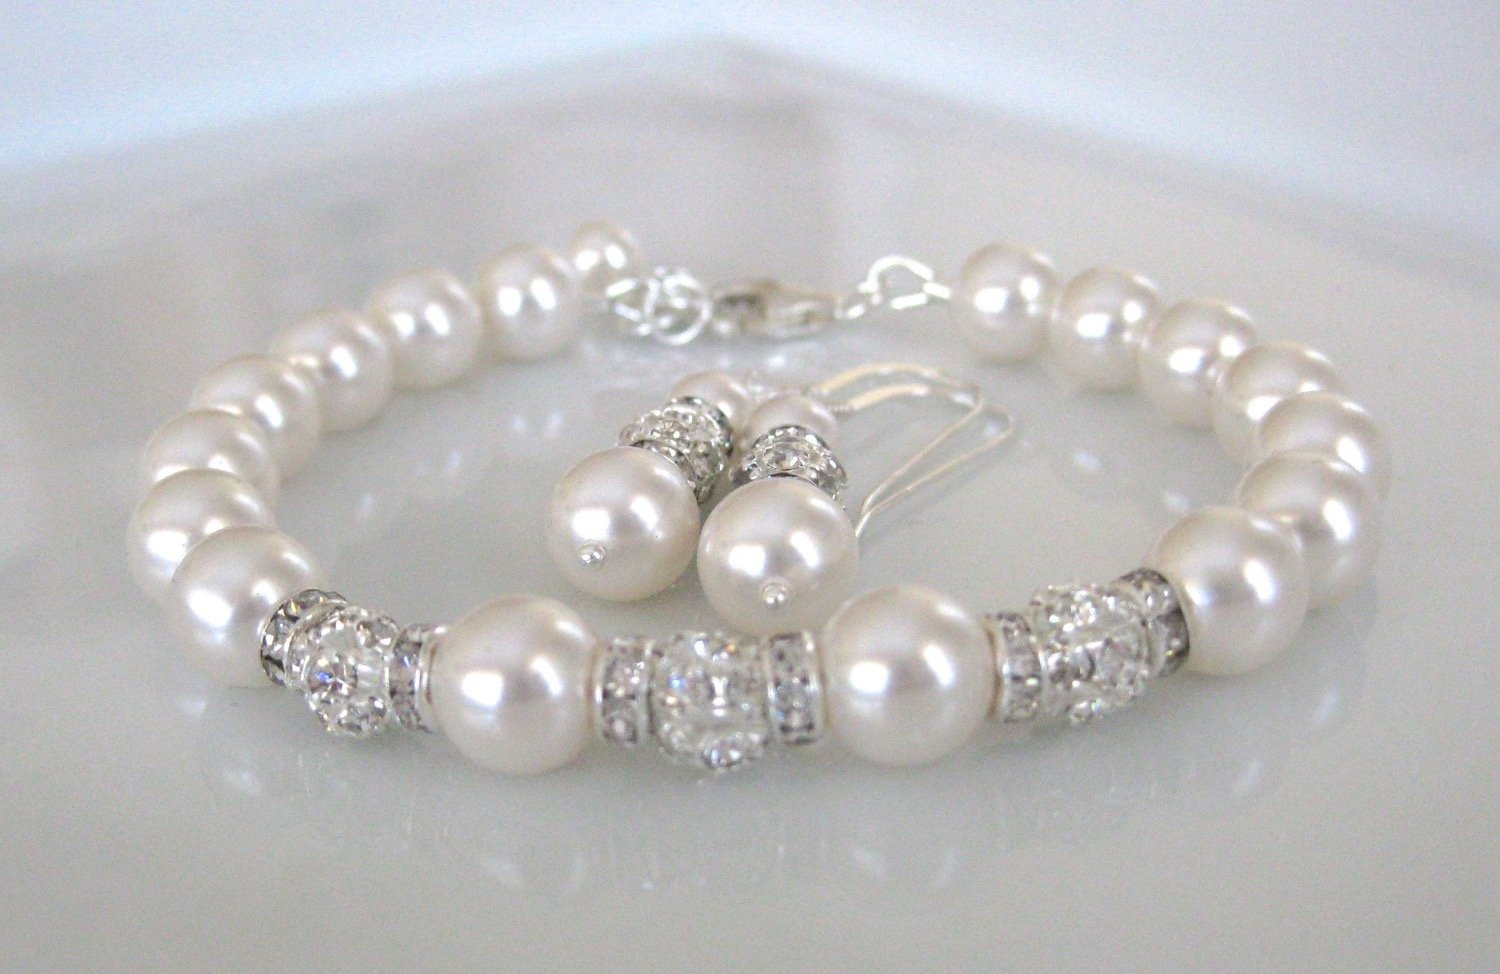 Bridal Jewelry Wedding Pearl Bracelet and Earring Set - Clairesbridal - 5